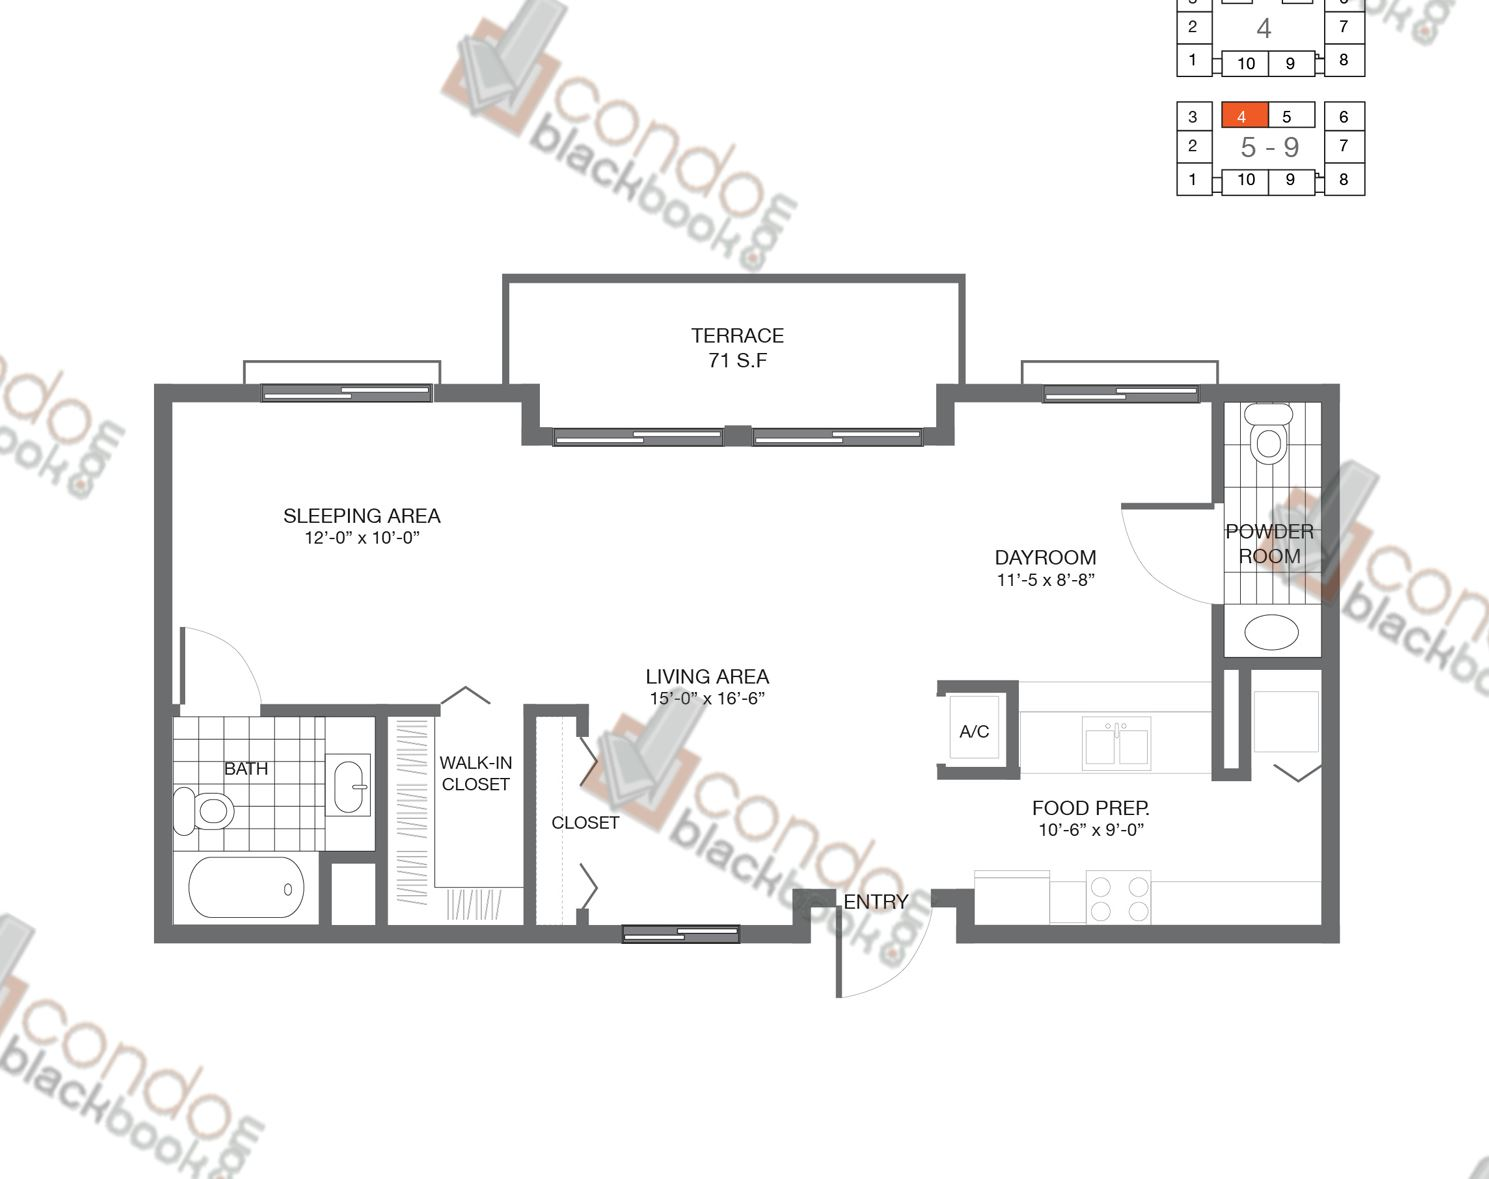 Floor plan for Bay Lofts Edgewater Miami, model Loft 4, line 04, 1/2 bedrooms, 835 sq ft